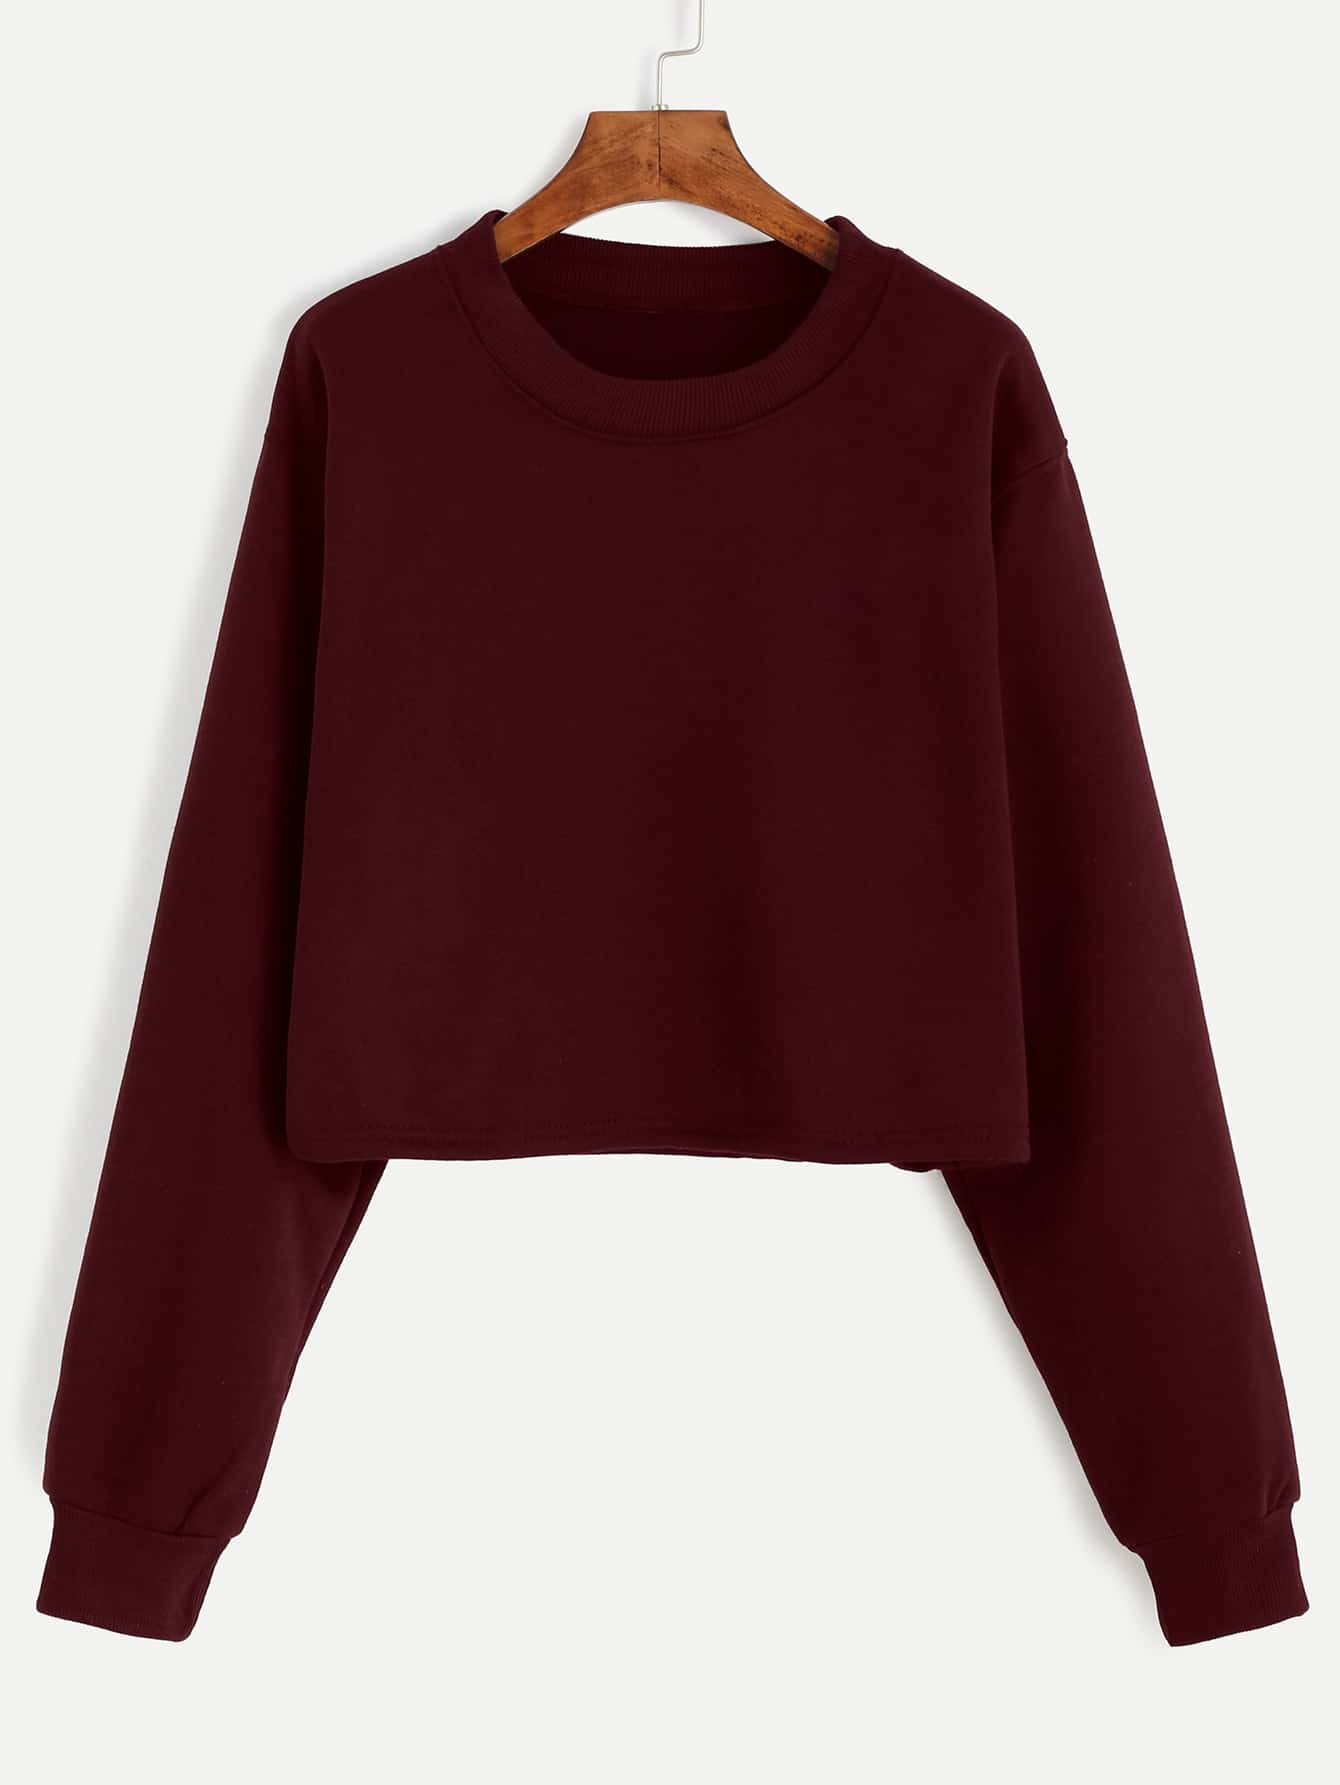 Burgundy Drop Shoulder Crop Sweatshirt drop shoulder crop sweatshirt